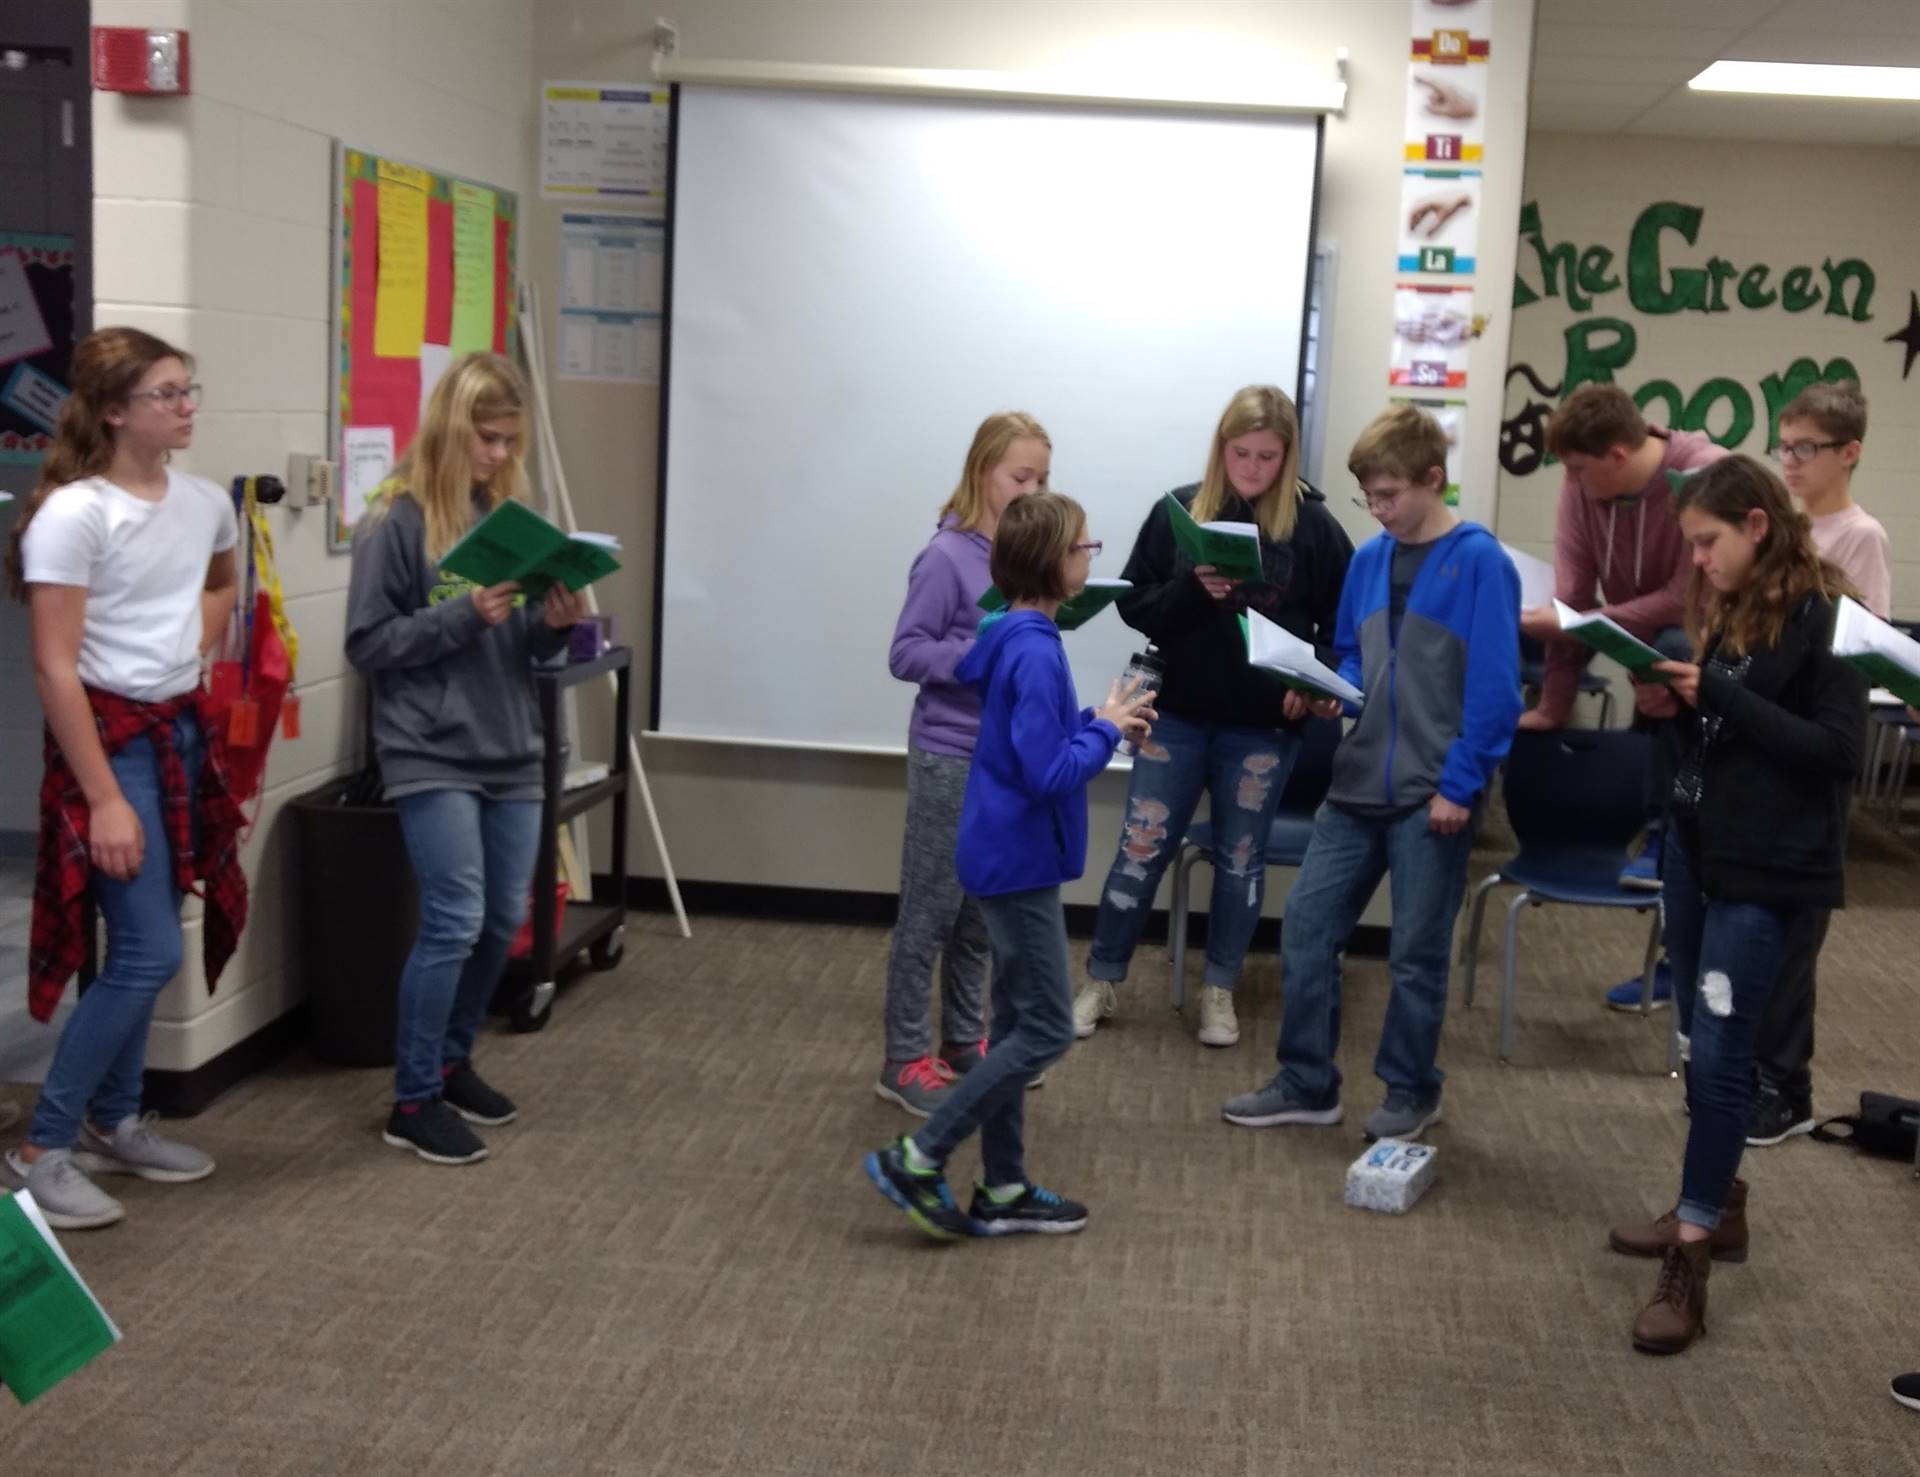 students practicing lines for a play